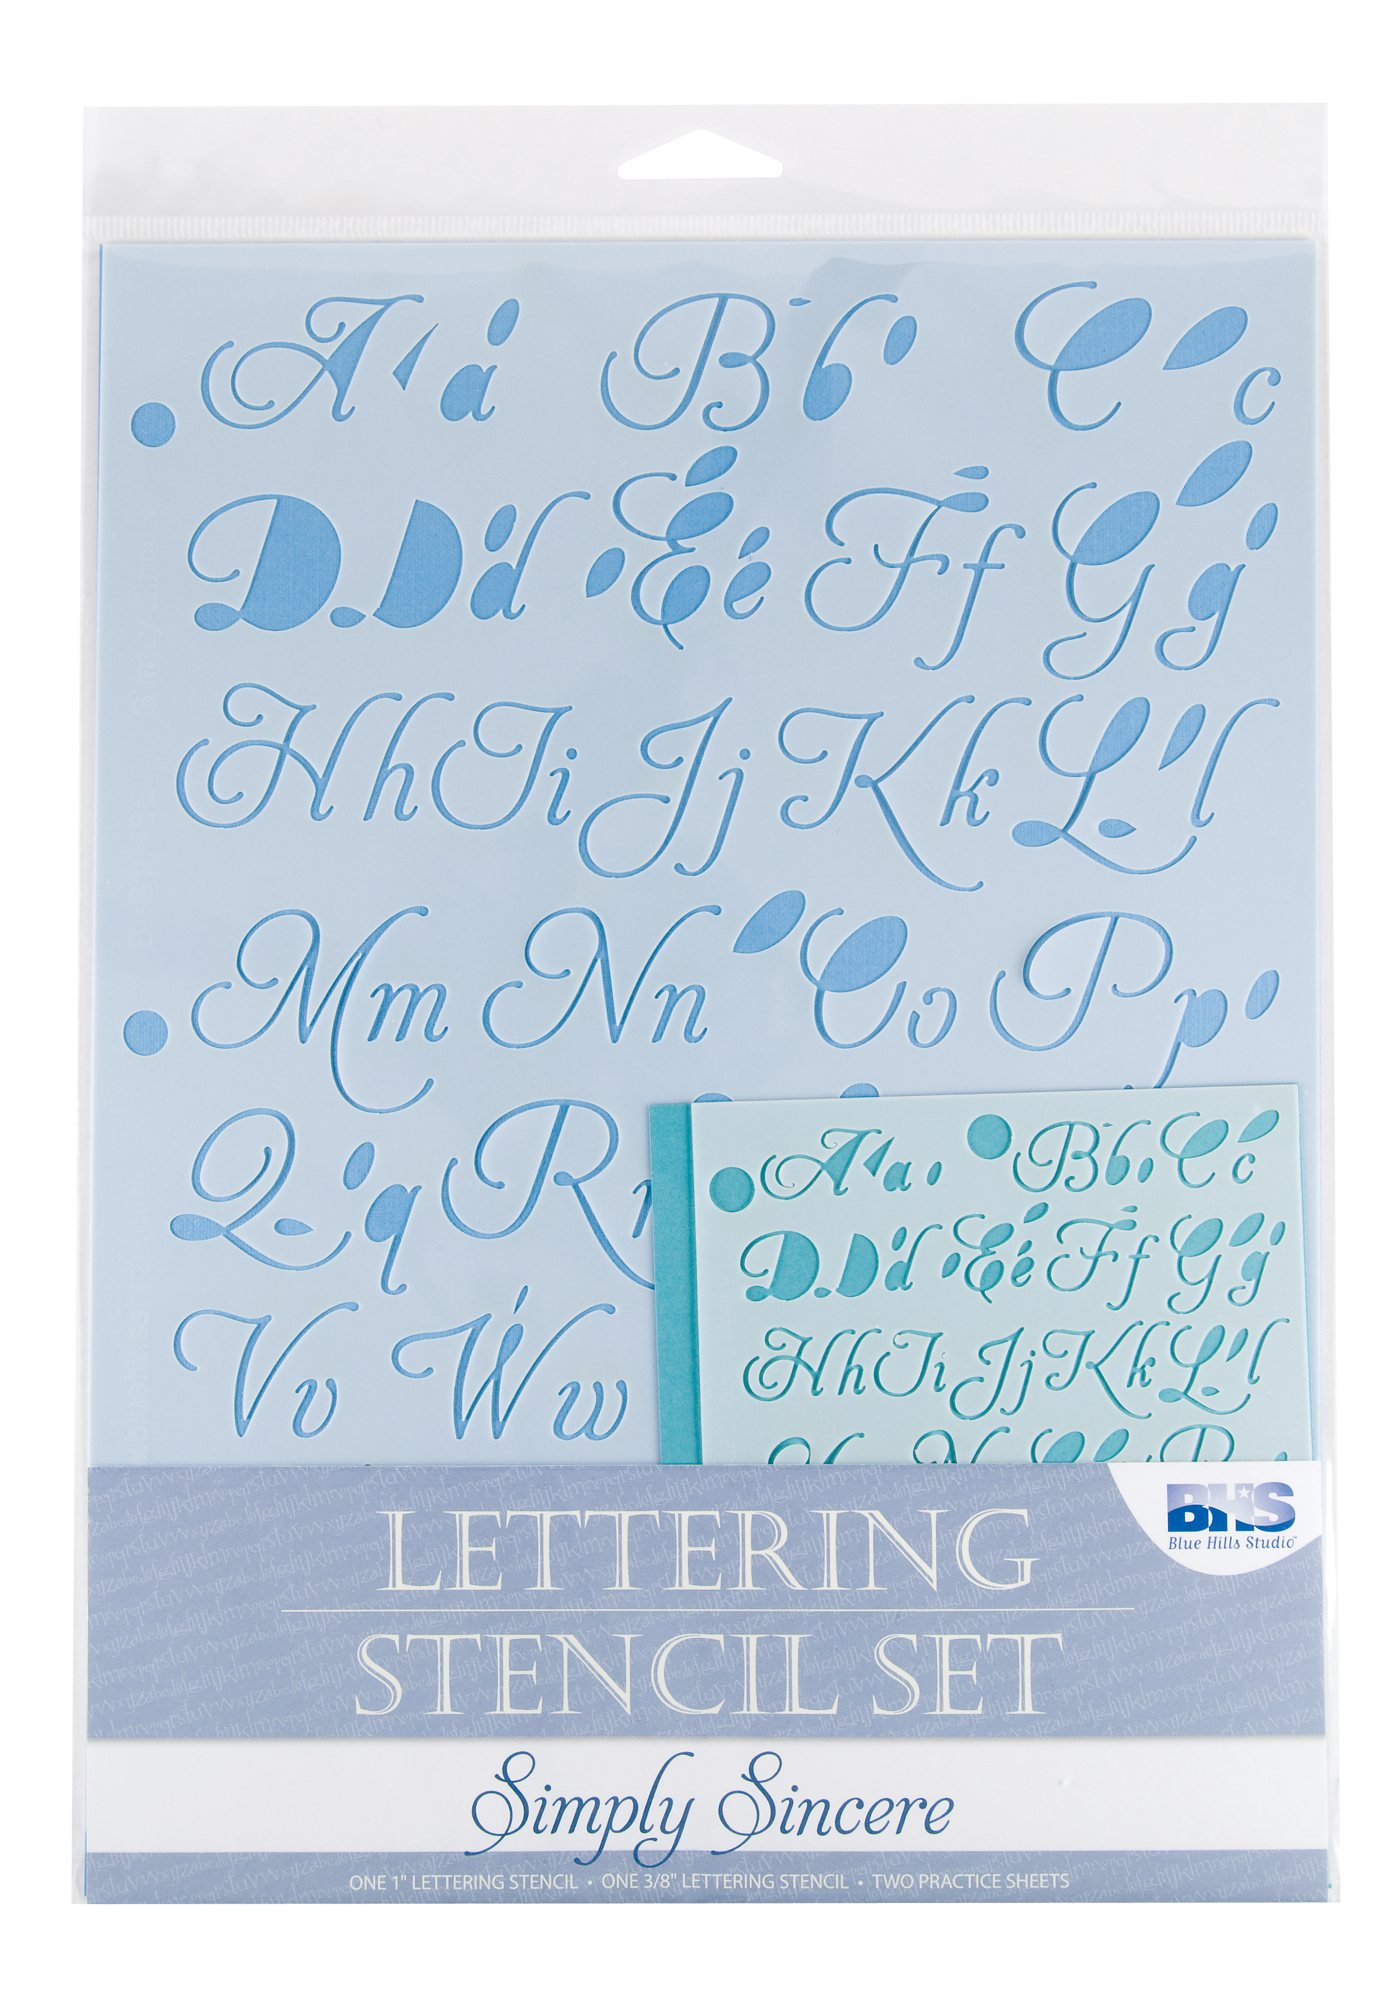 Lettering Stencil Set: Simply Sincere